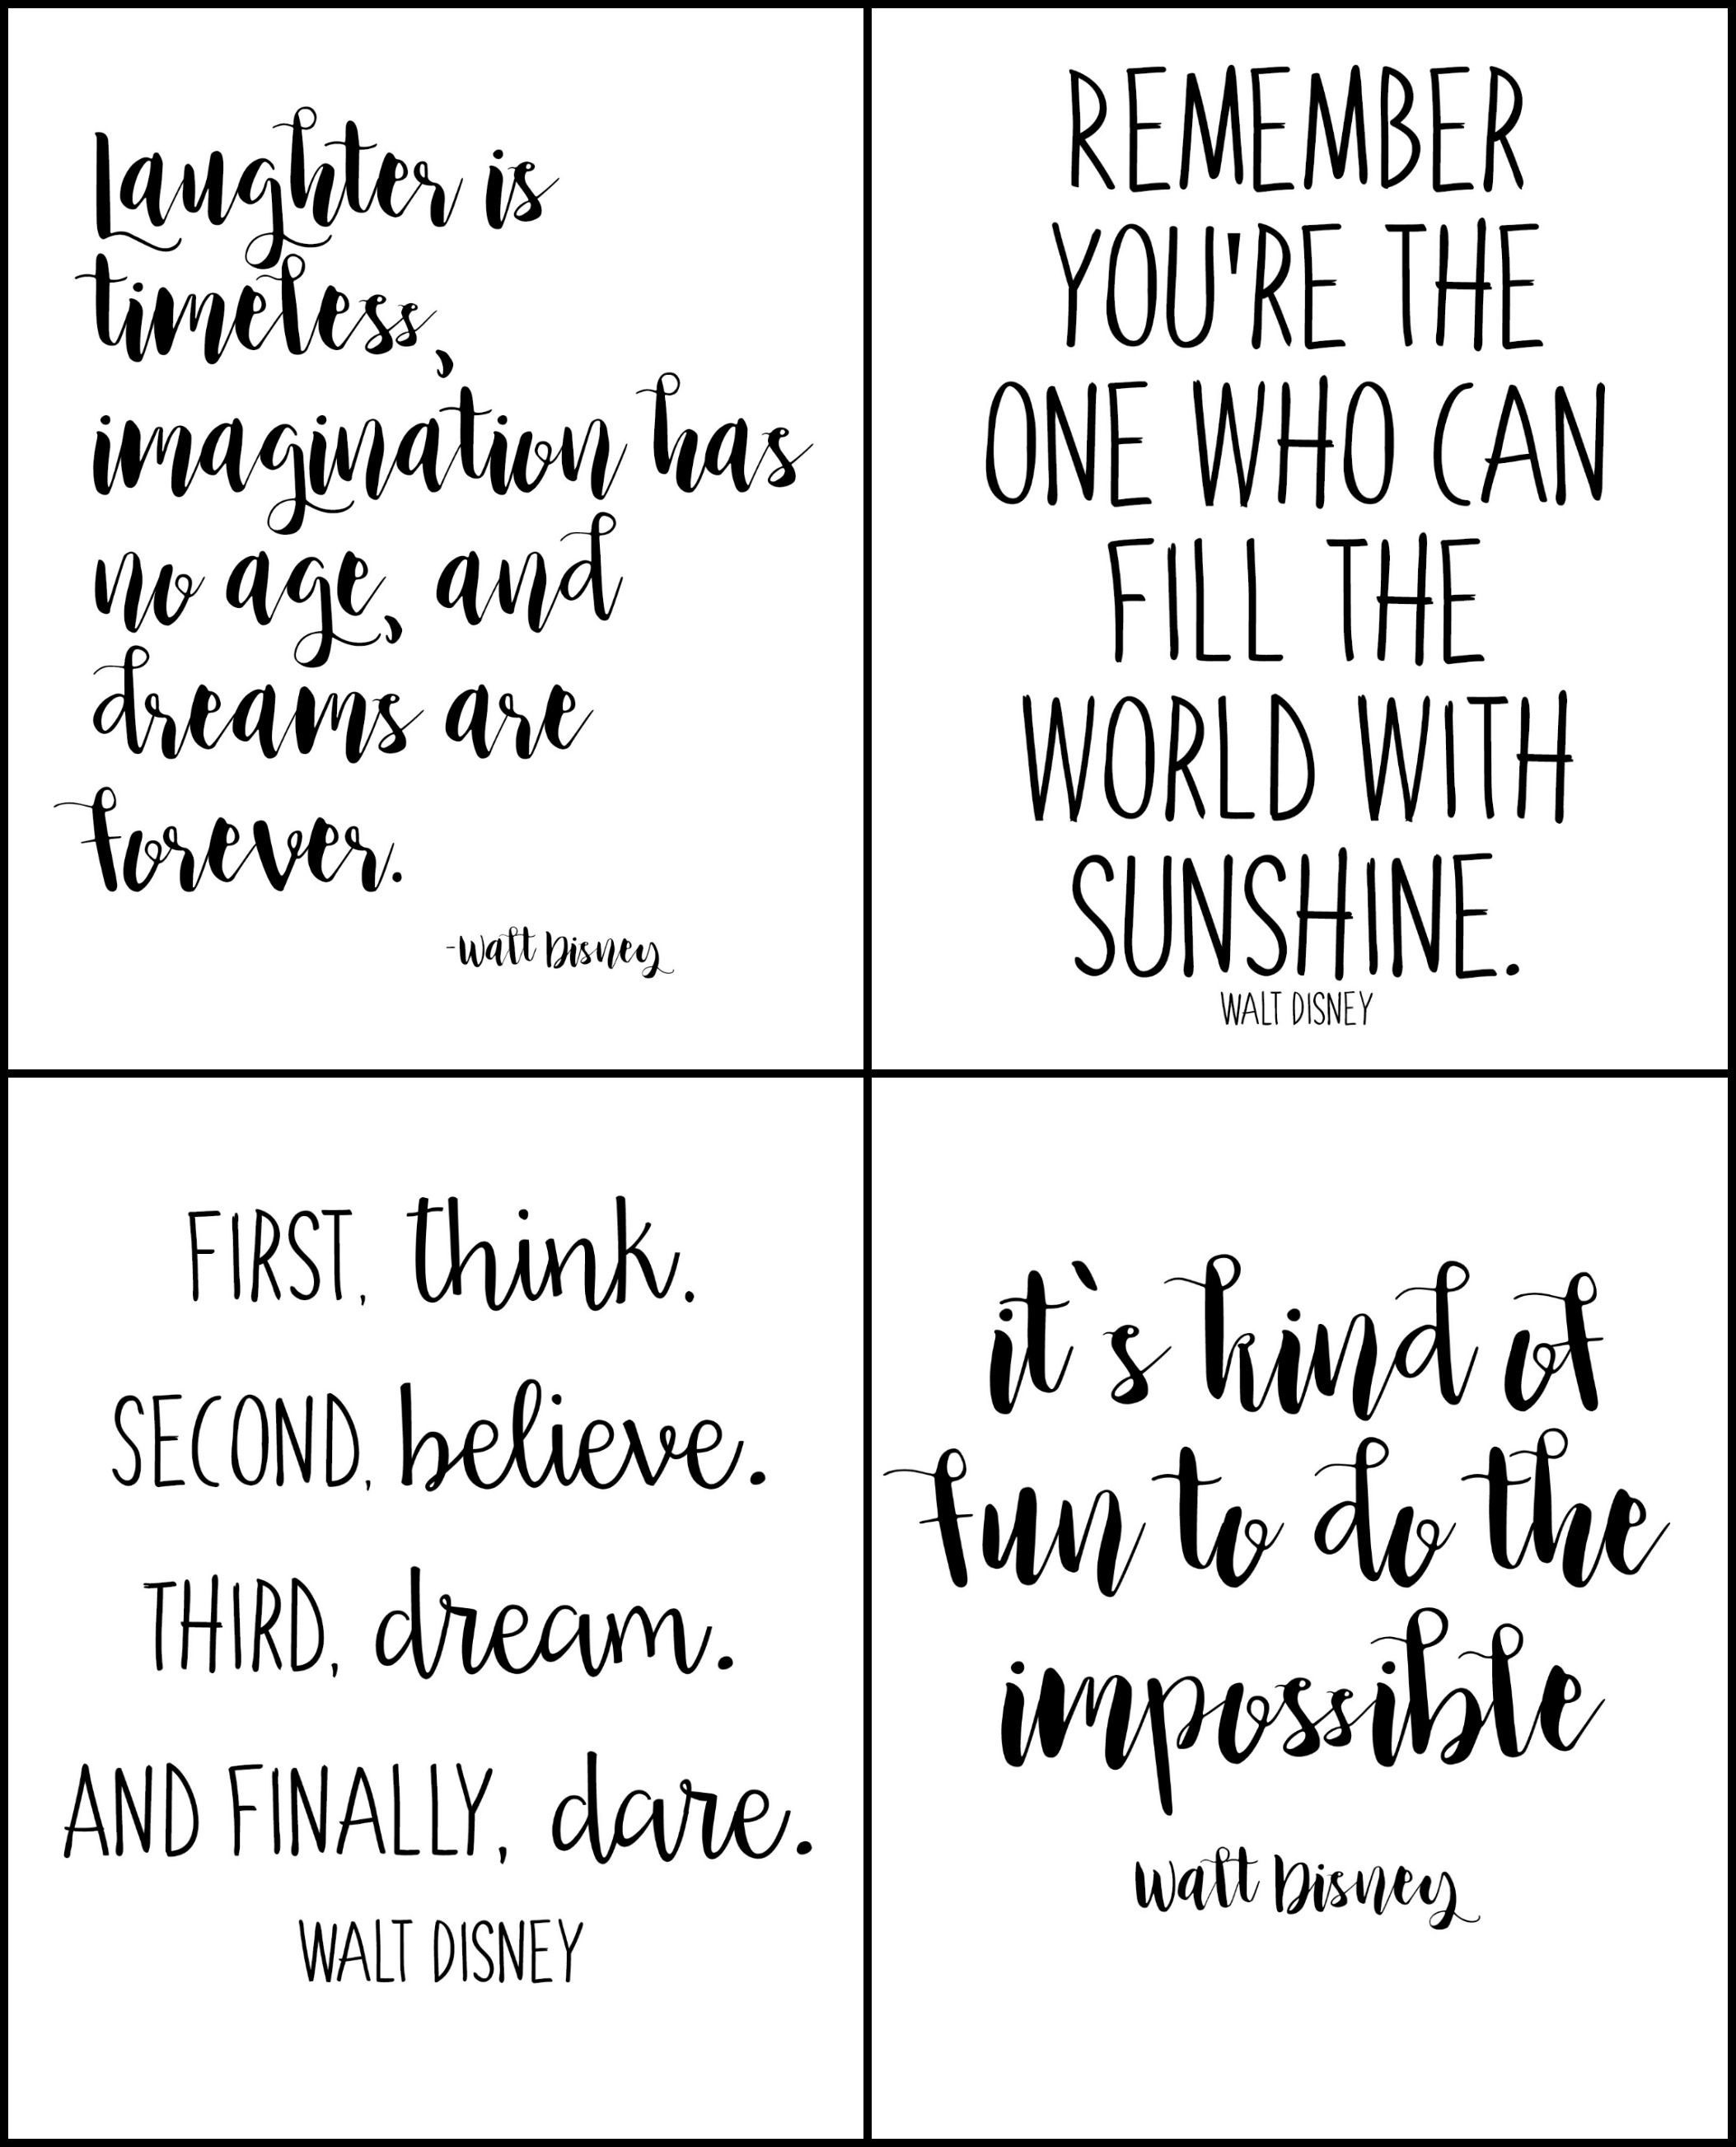 Free Printable Walt Disney Quotes | Disney | Walt Disney Quotes - Free Printable Quotes